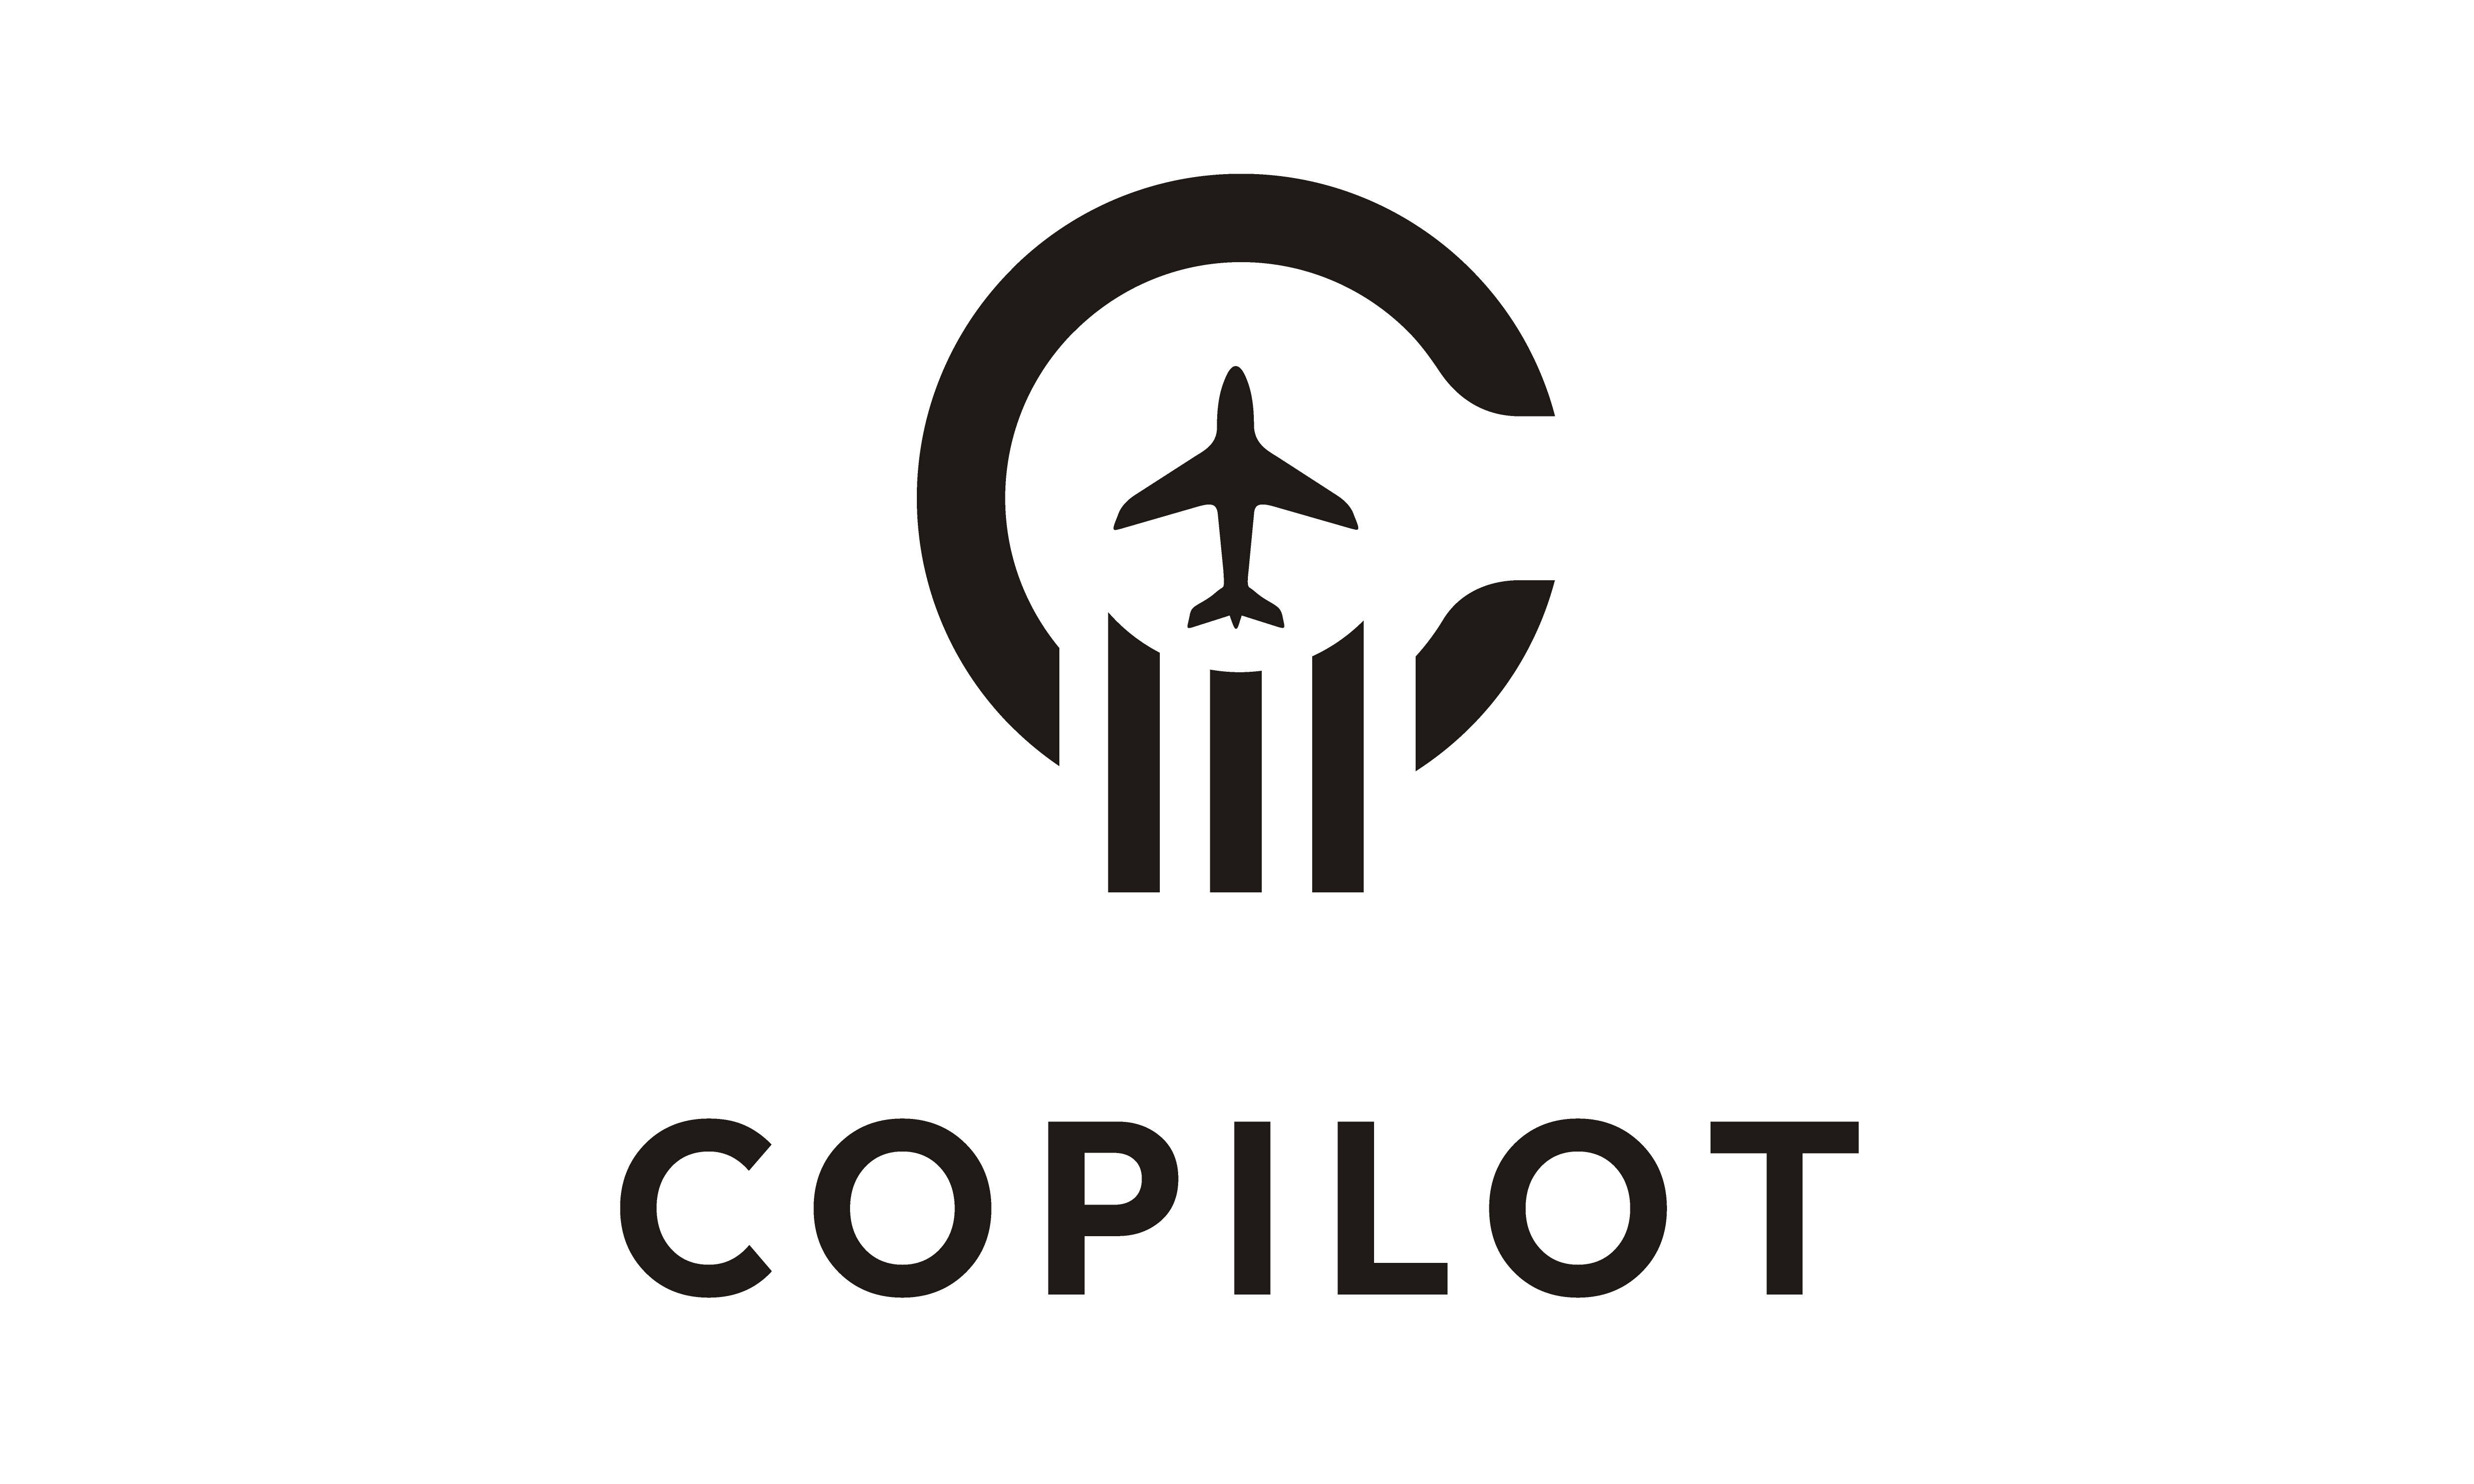 Download Free Initial Letter C Copilot Plane Logo Graphic By Enola99d for Cricut Explore, Silhouette and other cutting machines.